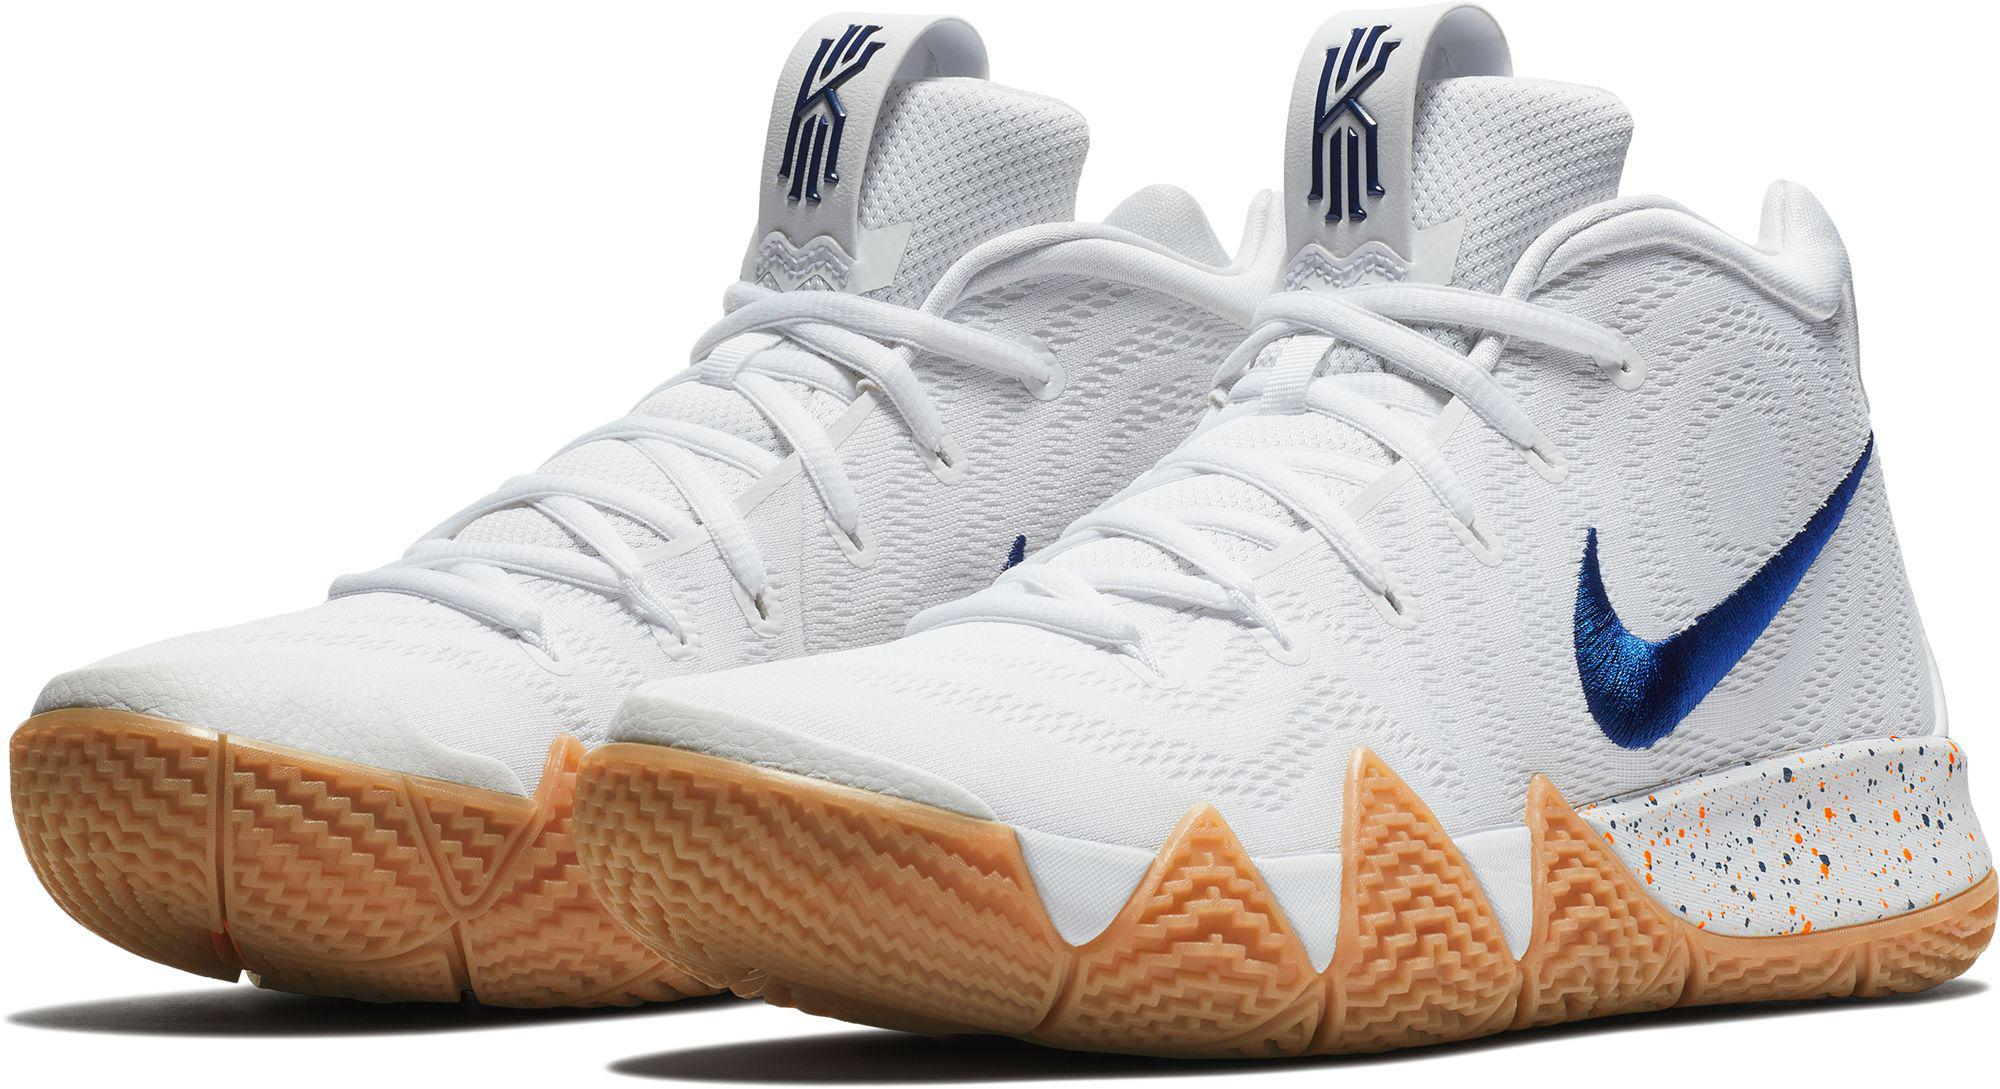 Lyst - Nike Kyrie 4 Basketball Shoes in White for Men a0da6c906